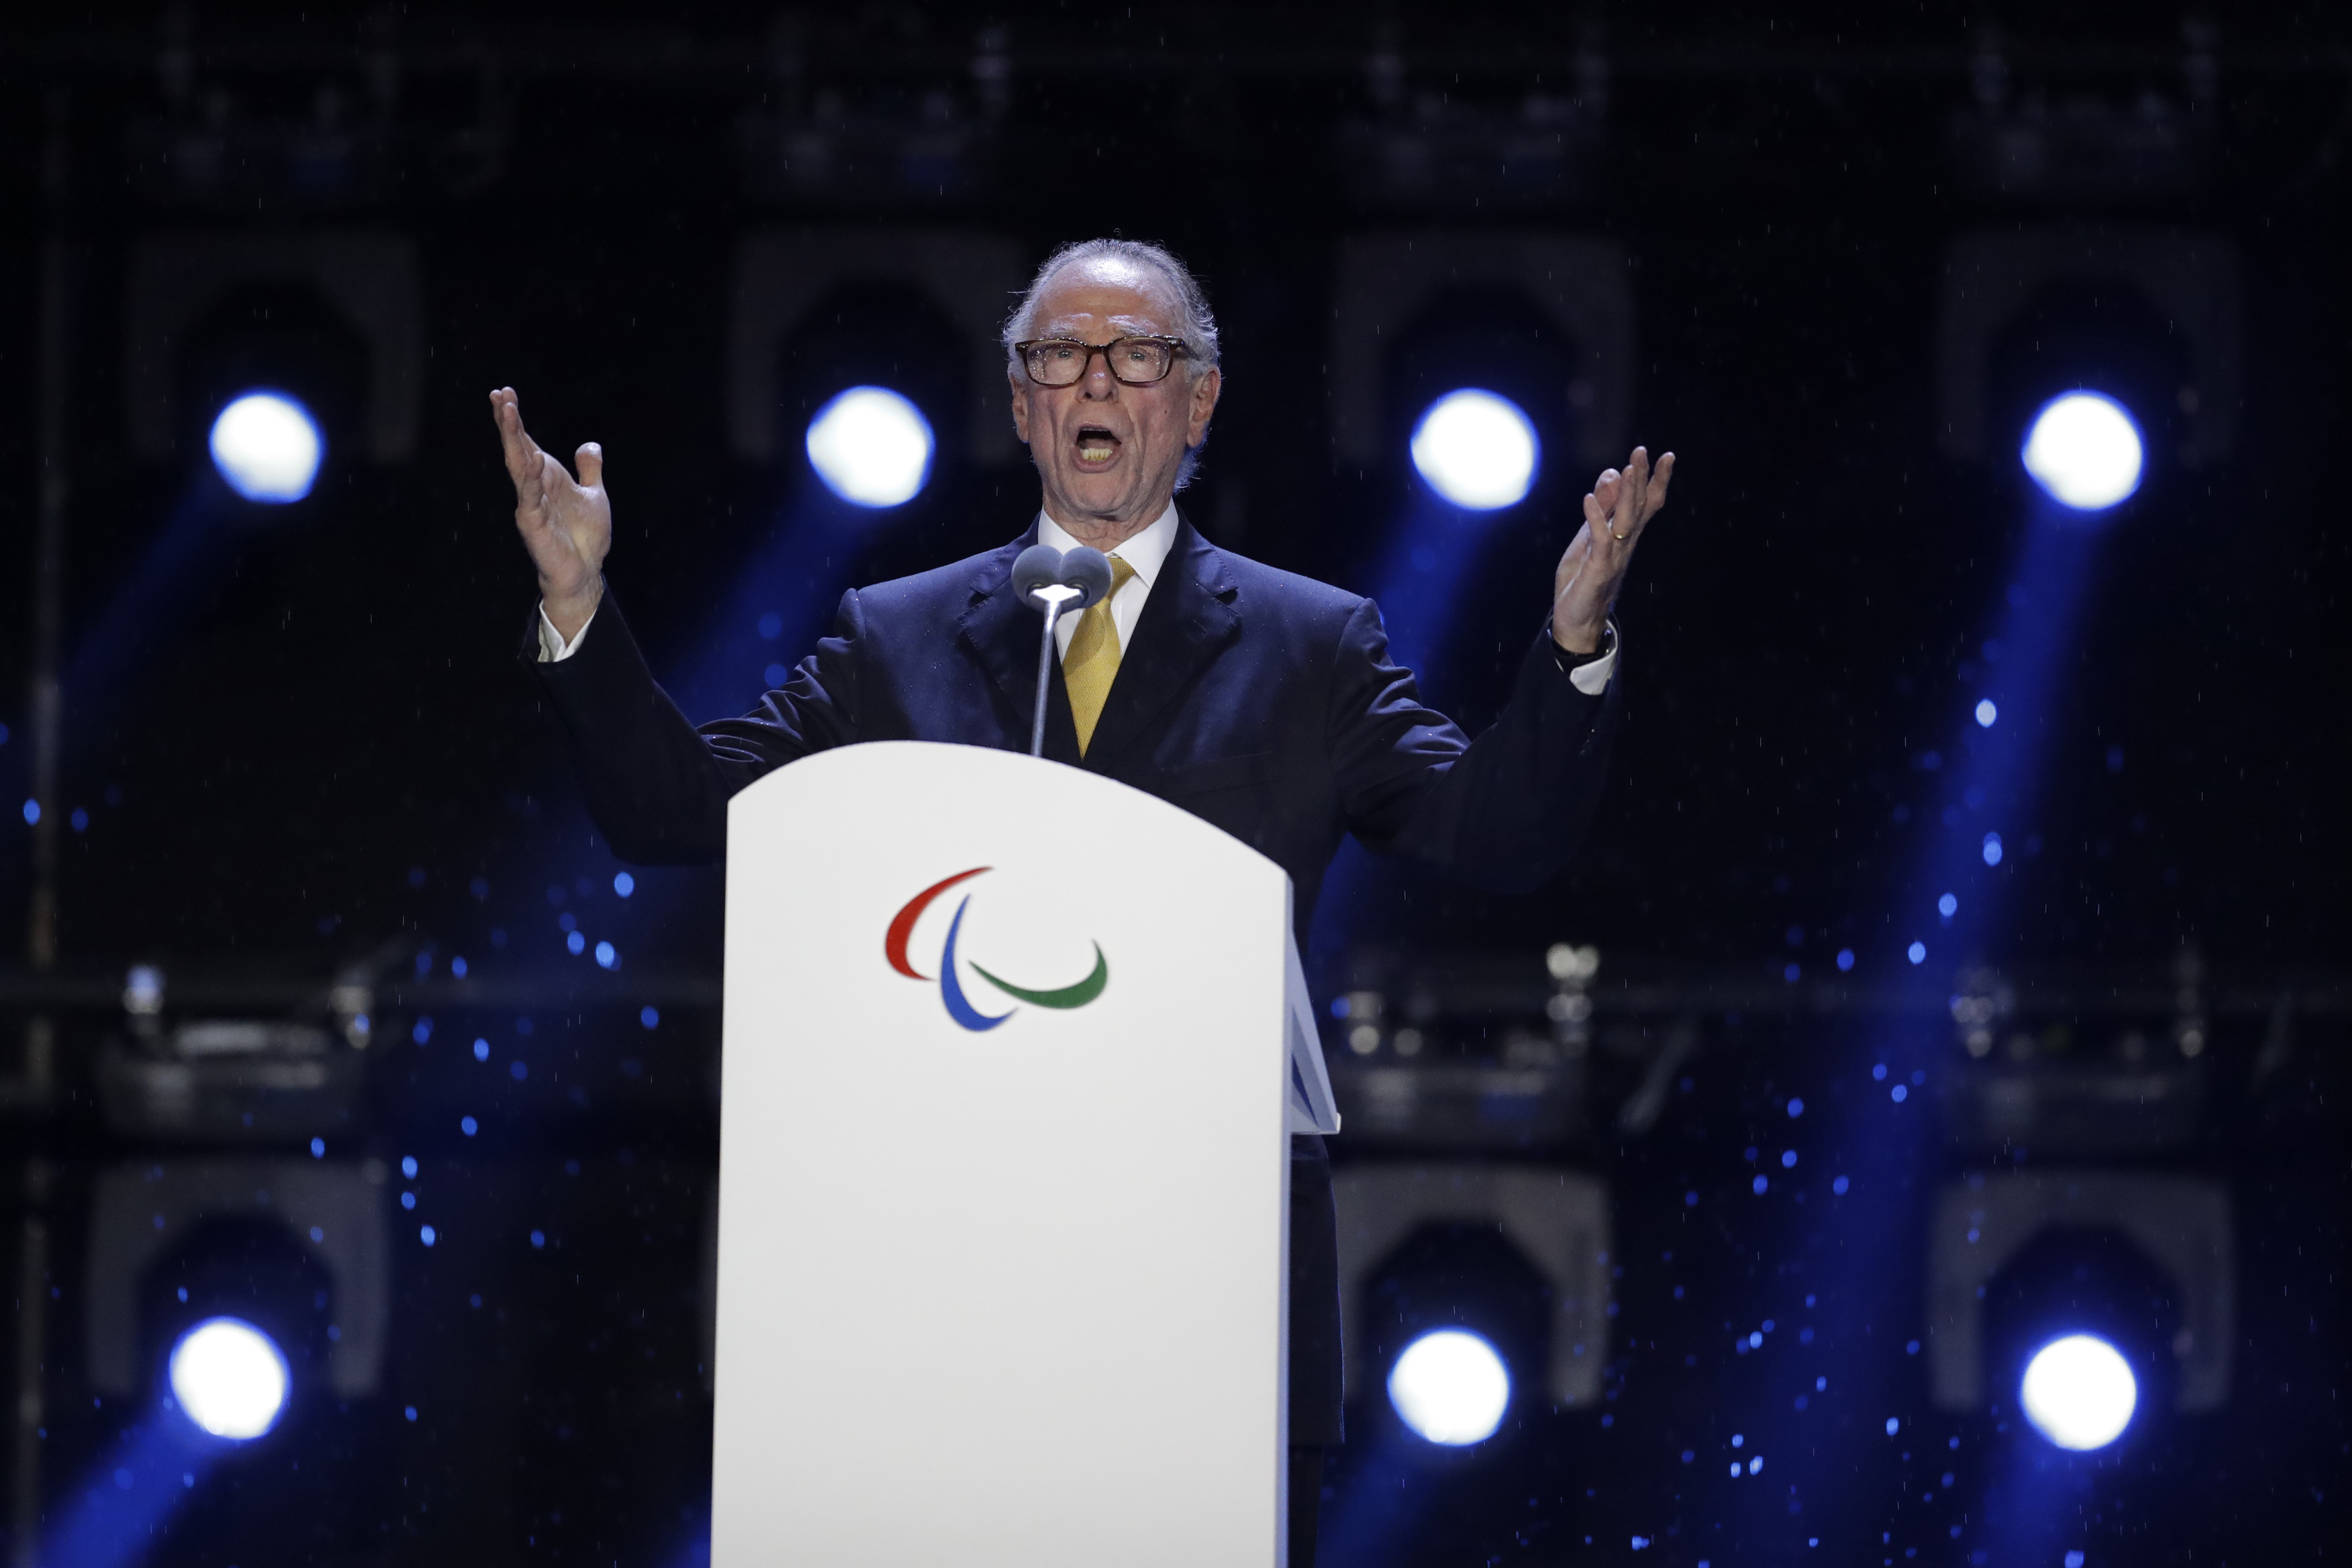 FILE - In this Sept. 18, 2016, file photo, Carlos Nuzman, President of the Rio 2016 Organizing Committee, speaks during the closing ceremony of the Rio 2016 Paralympic Games at the Maracana Stadium in Rio de Janeiro, Brazil. Senior International Olympic C